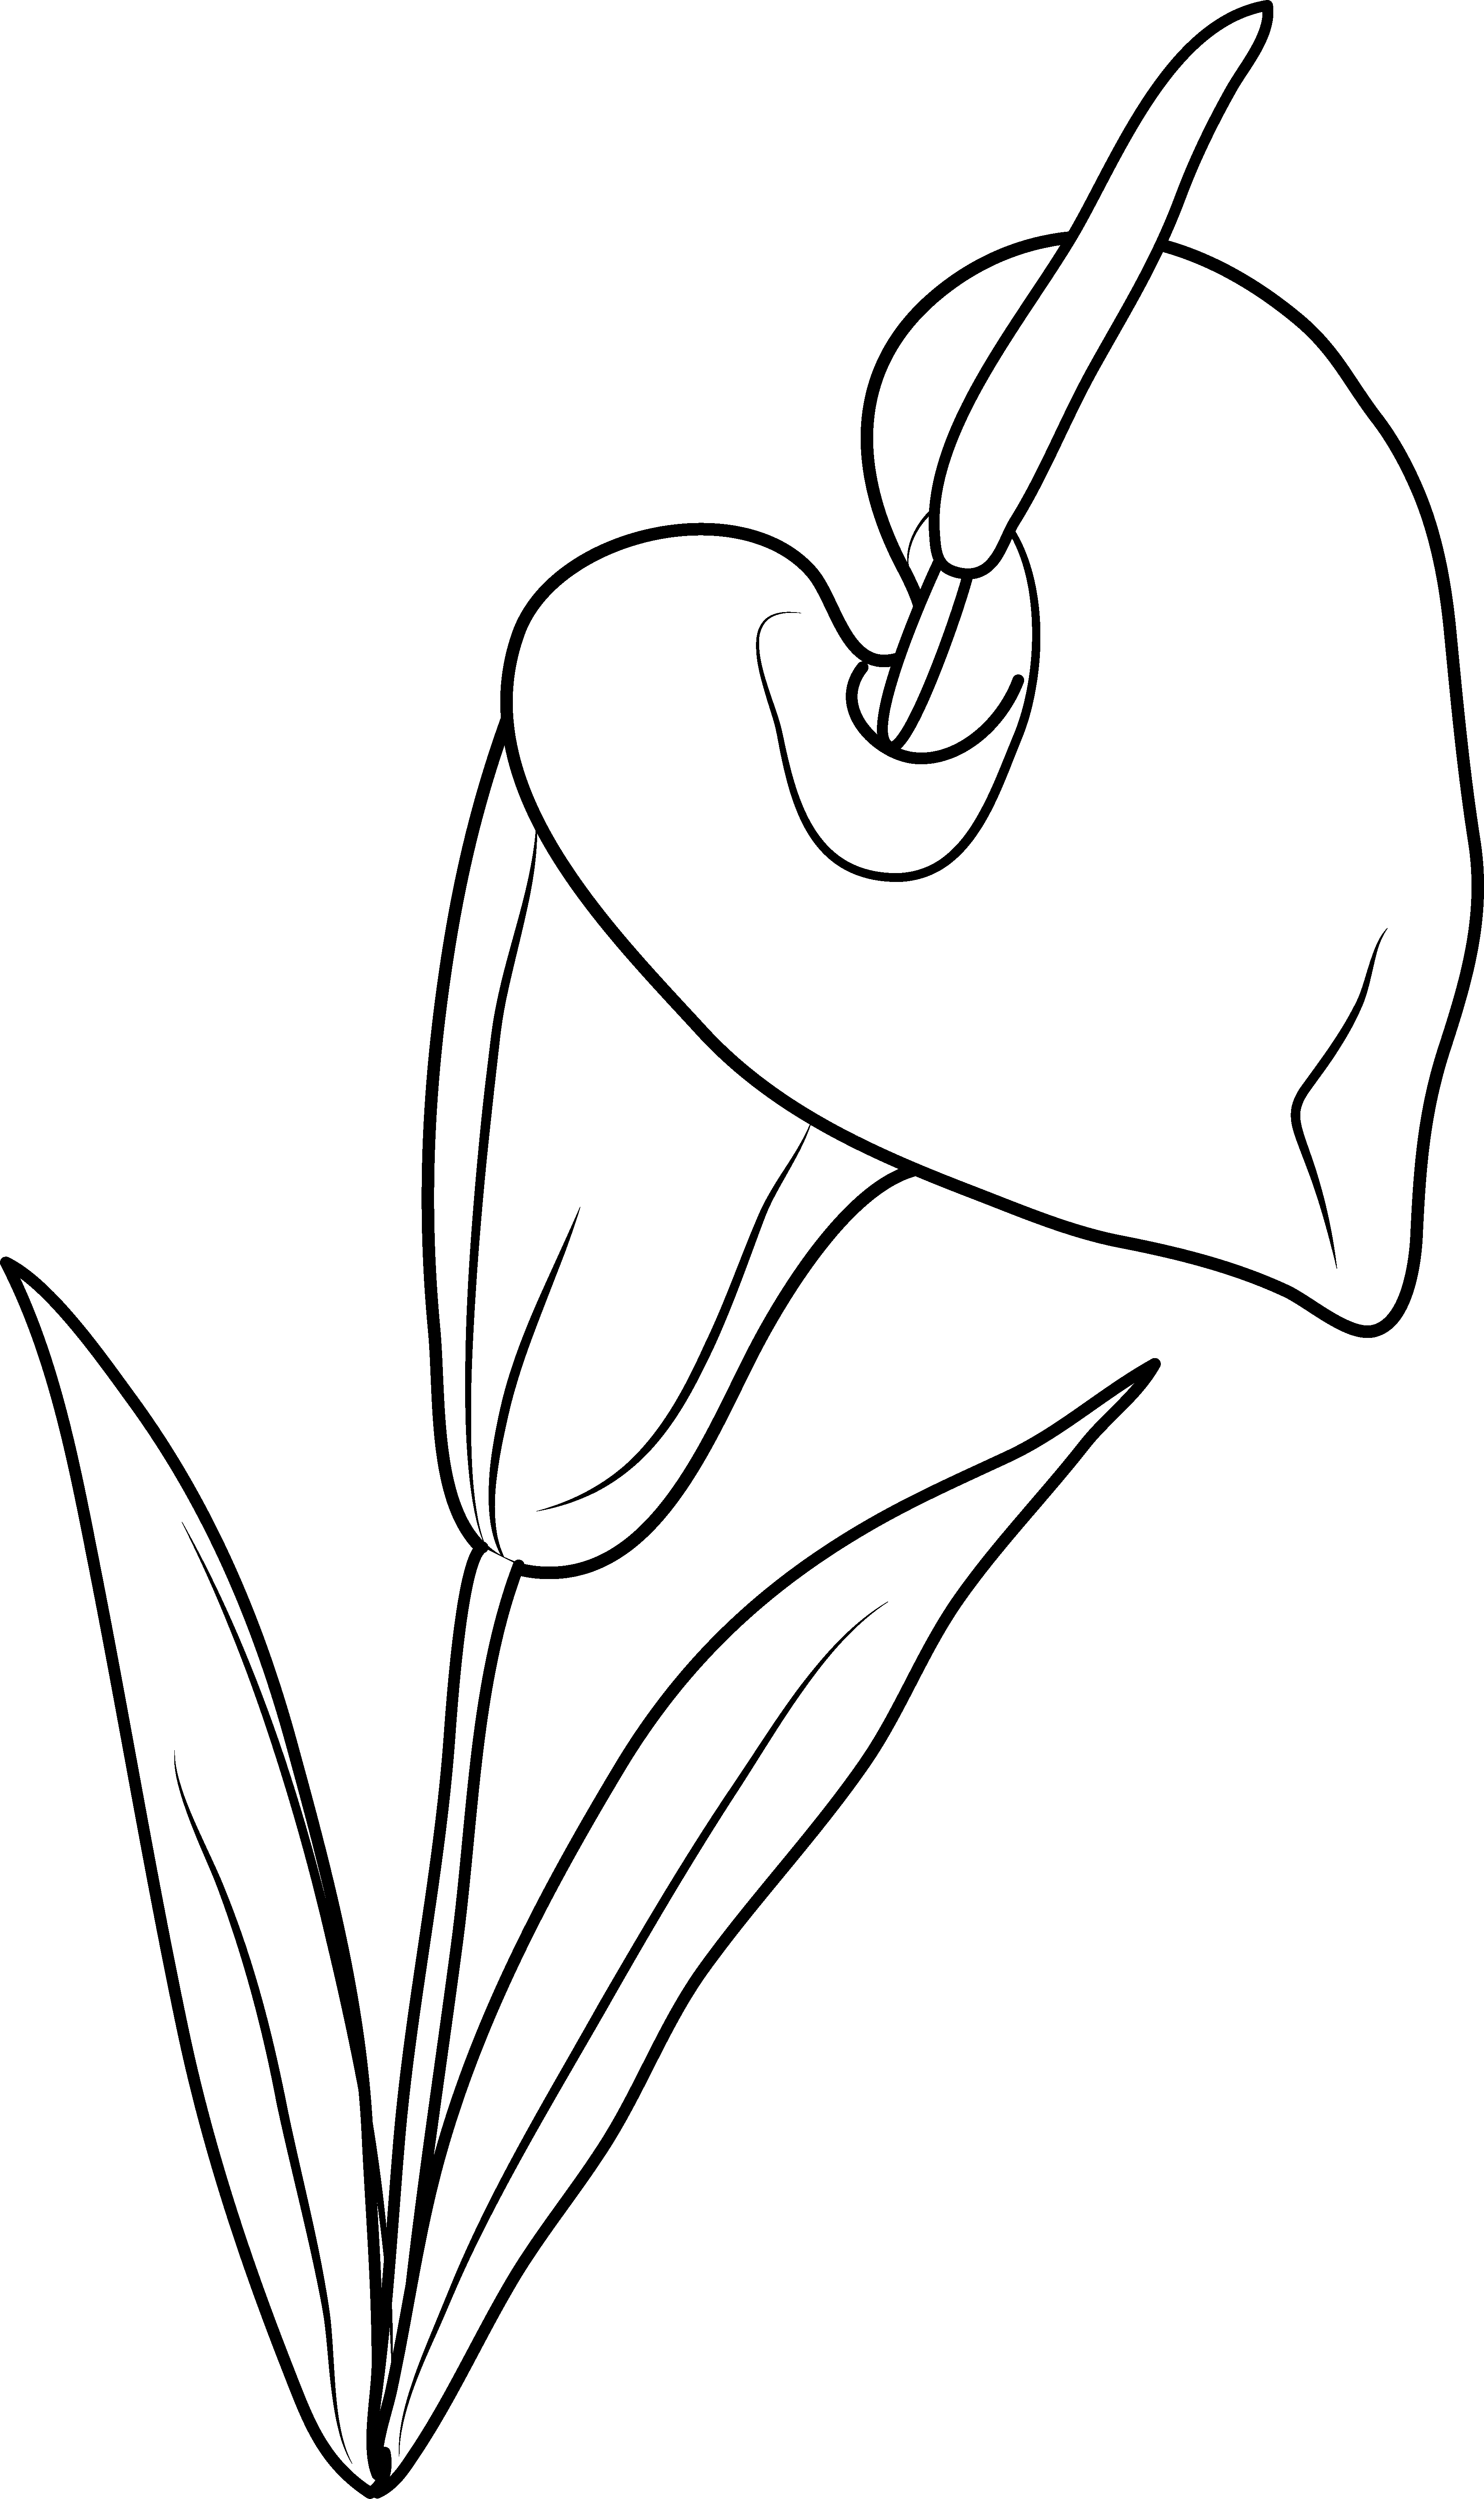 Clipart calla lily flower vector freeuse download Lily Flower Coloring Page - Free Clip Art vector freeuse download